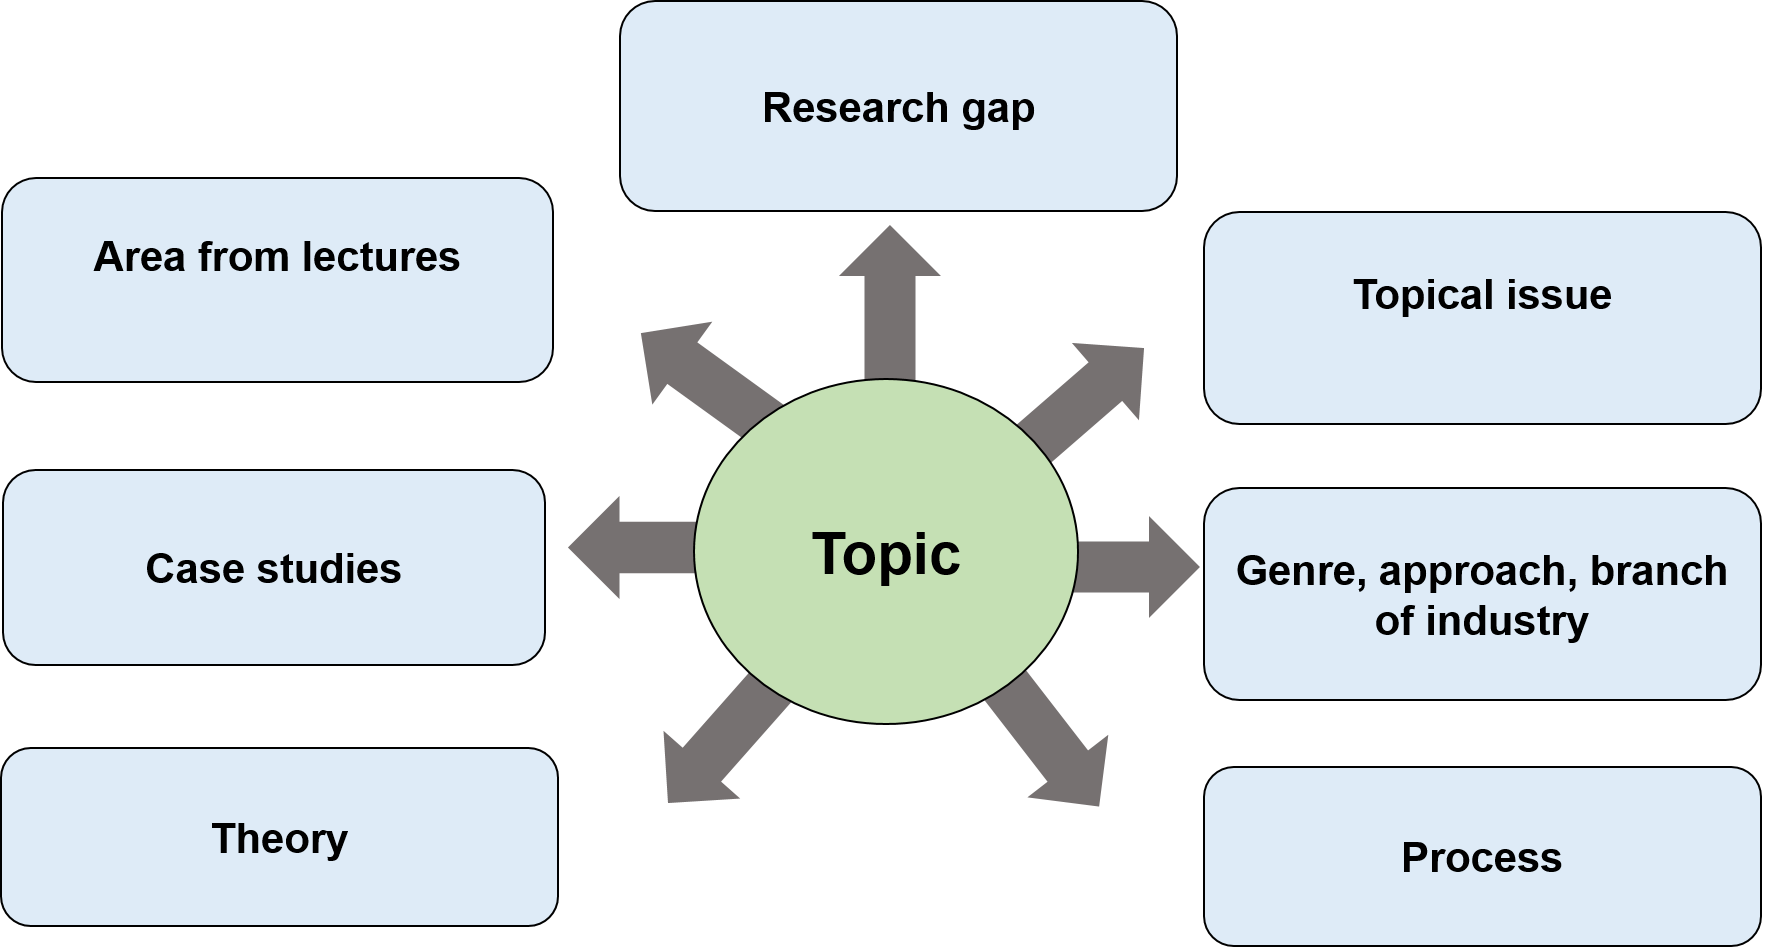 Possible areas for research diagram. See the questions below for more details.